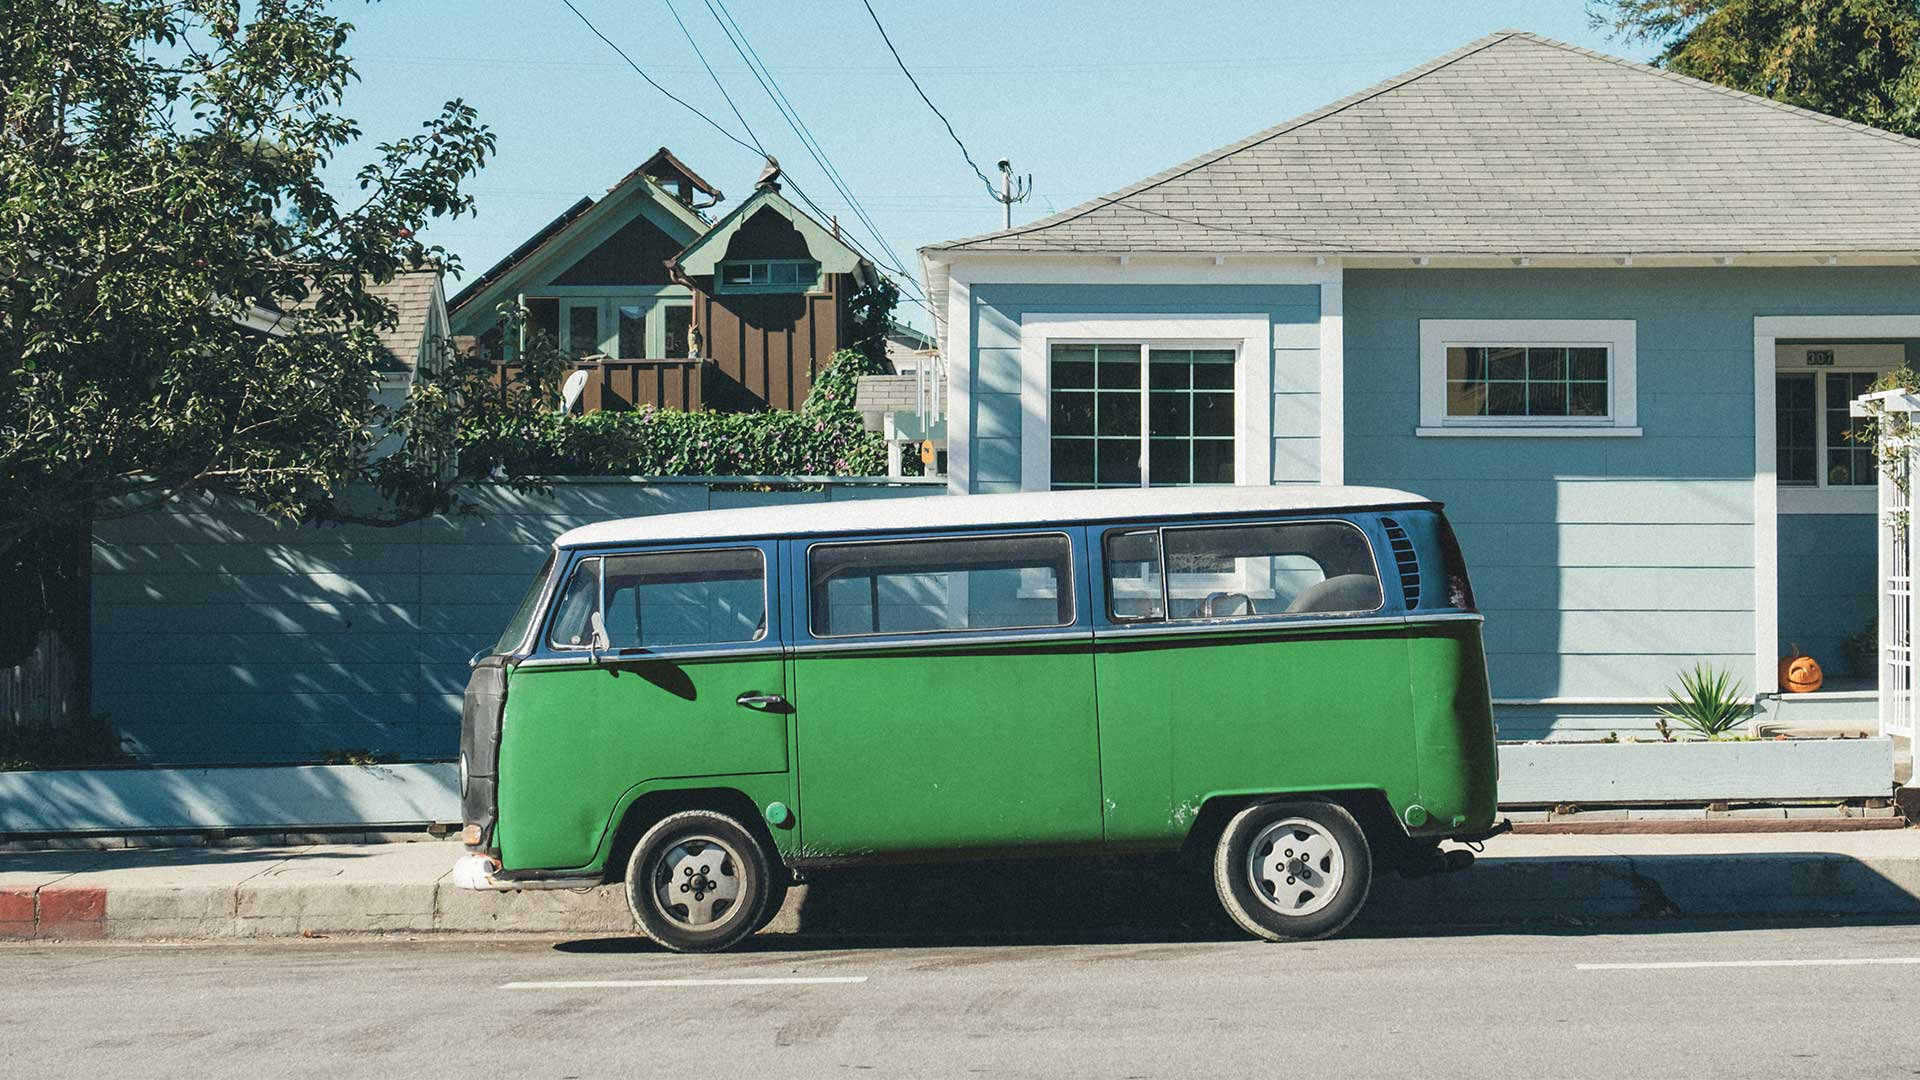 VW campervan green colorized with Imerge Pro color adjustment effect